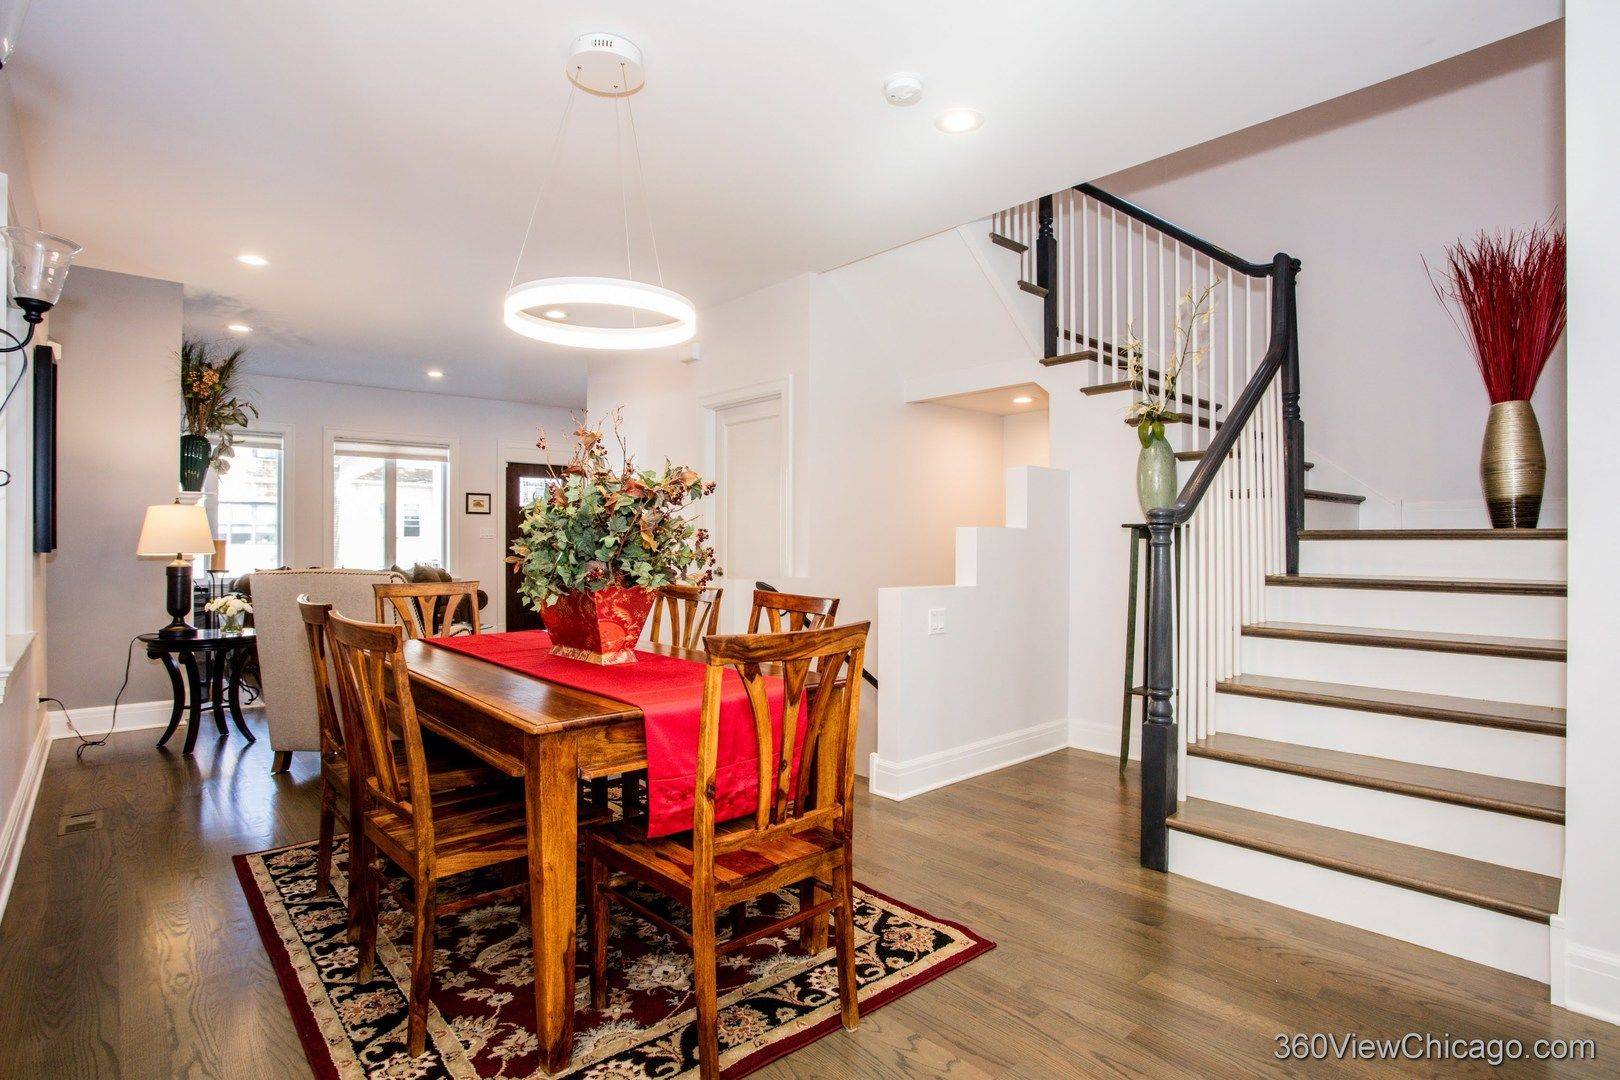 Photo 7: Photos: 1733 Troy Street in Chicago: CHI - Humboldt Park Residential for sale ()  : MLS®# 10911567